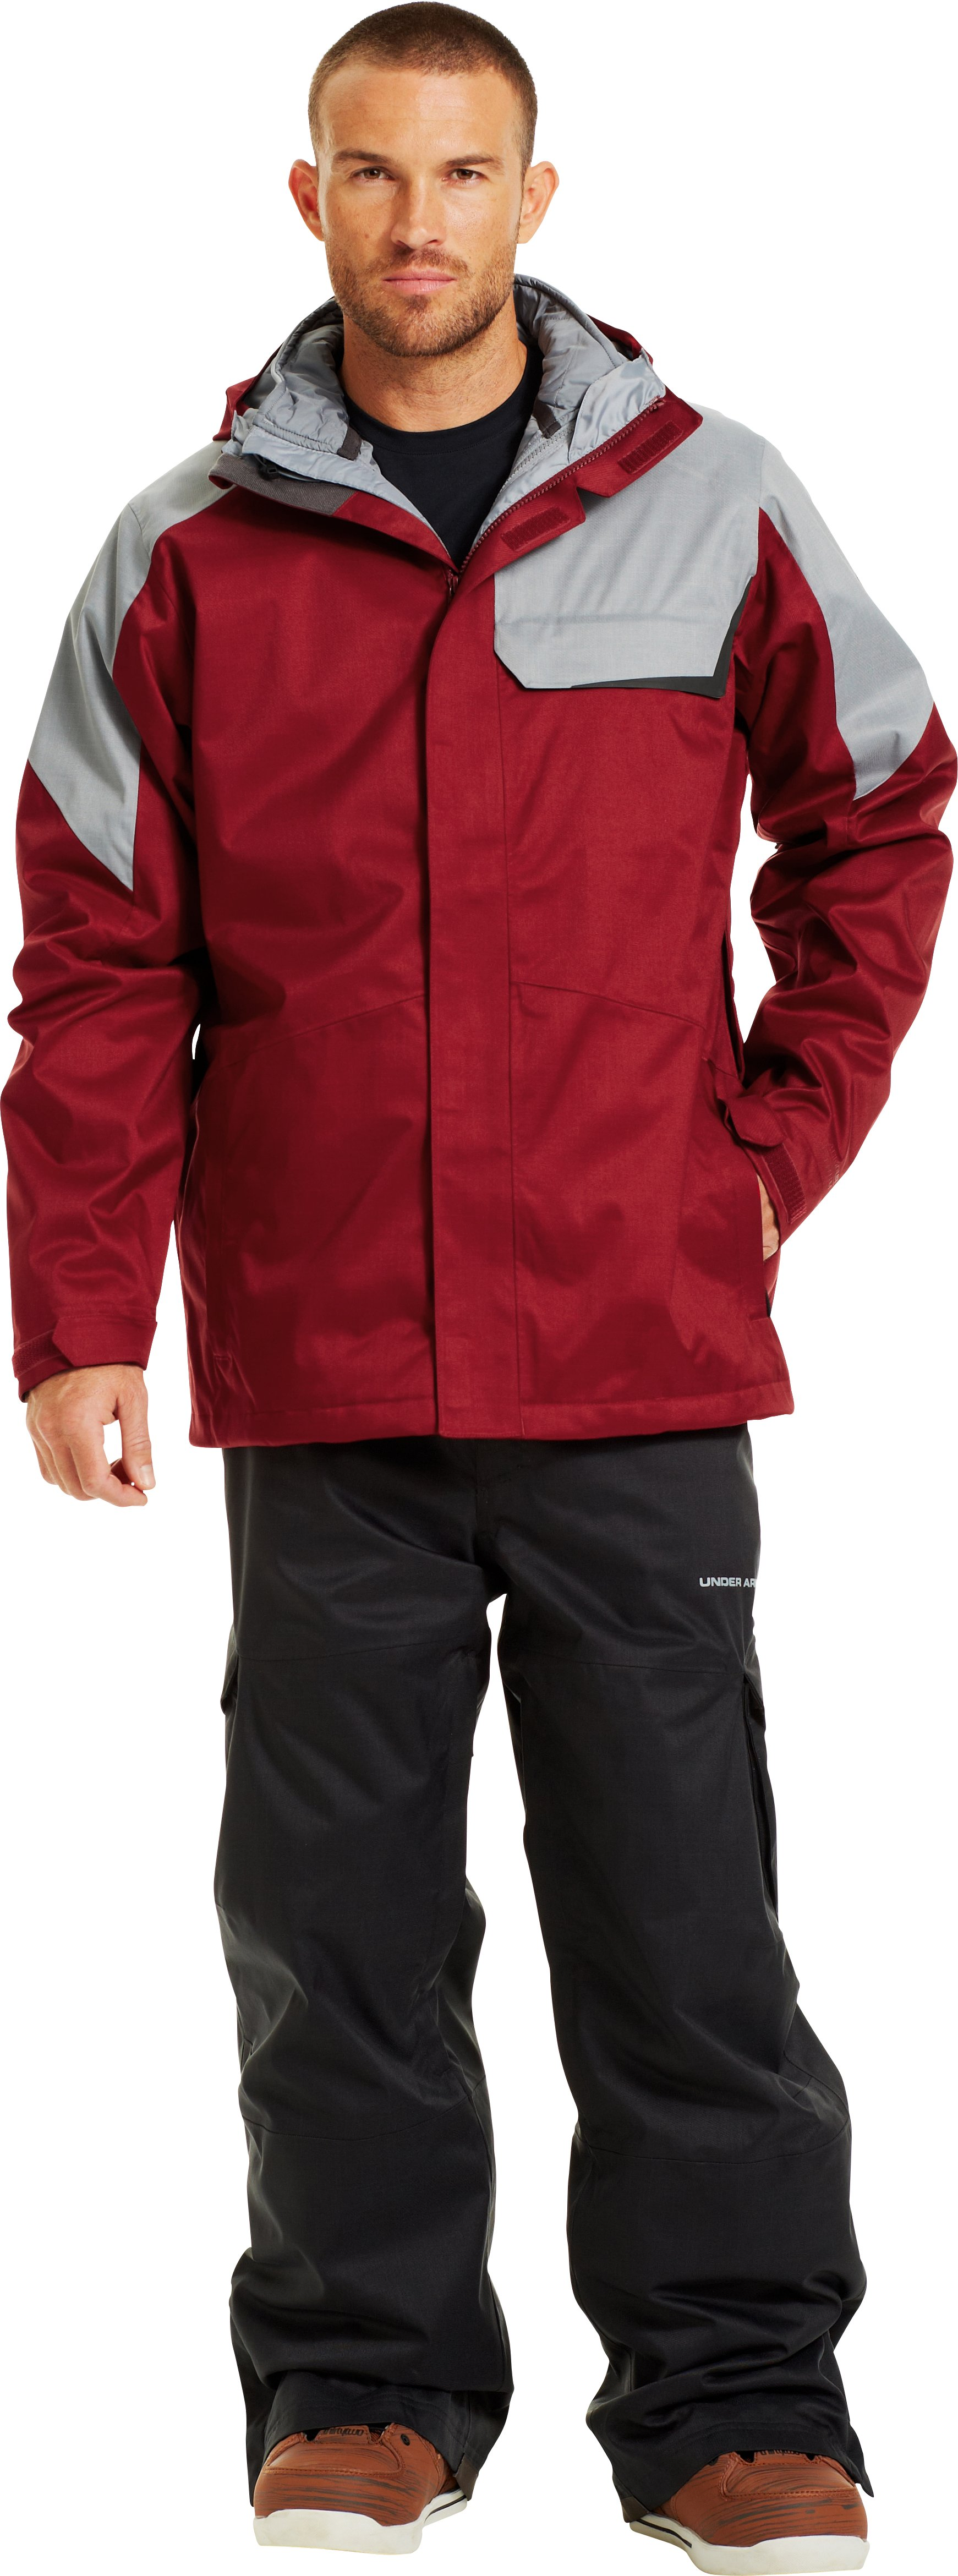 Men's ColdGear® Infrared Tripper 3-in-1 Jacket, CORDOVA, zoomed image